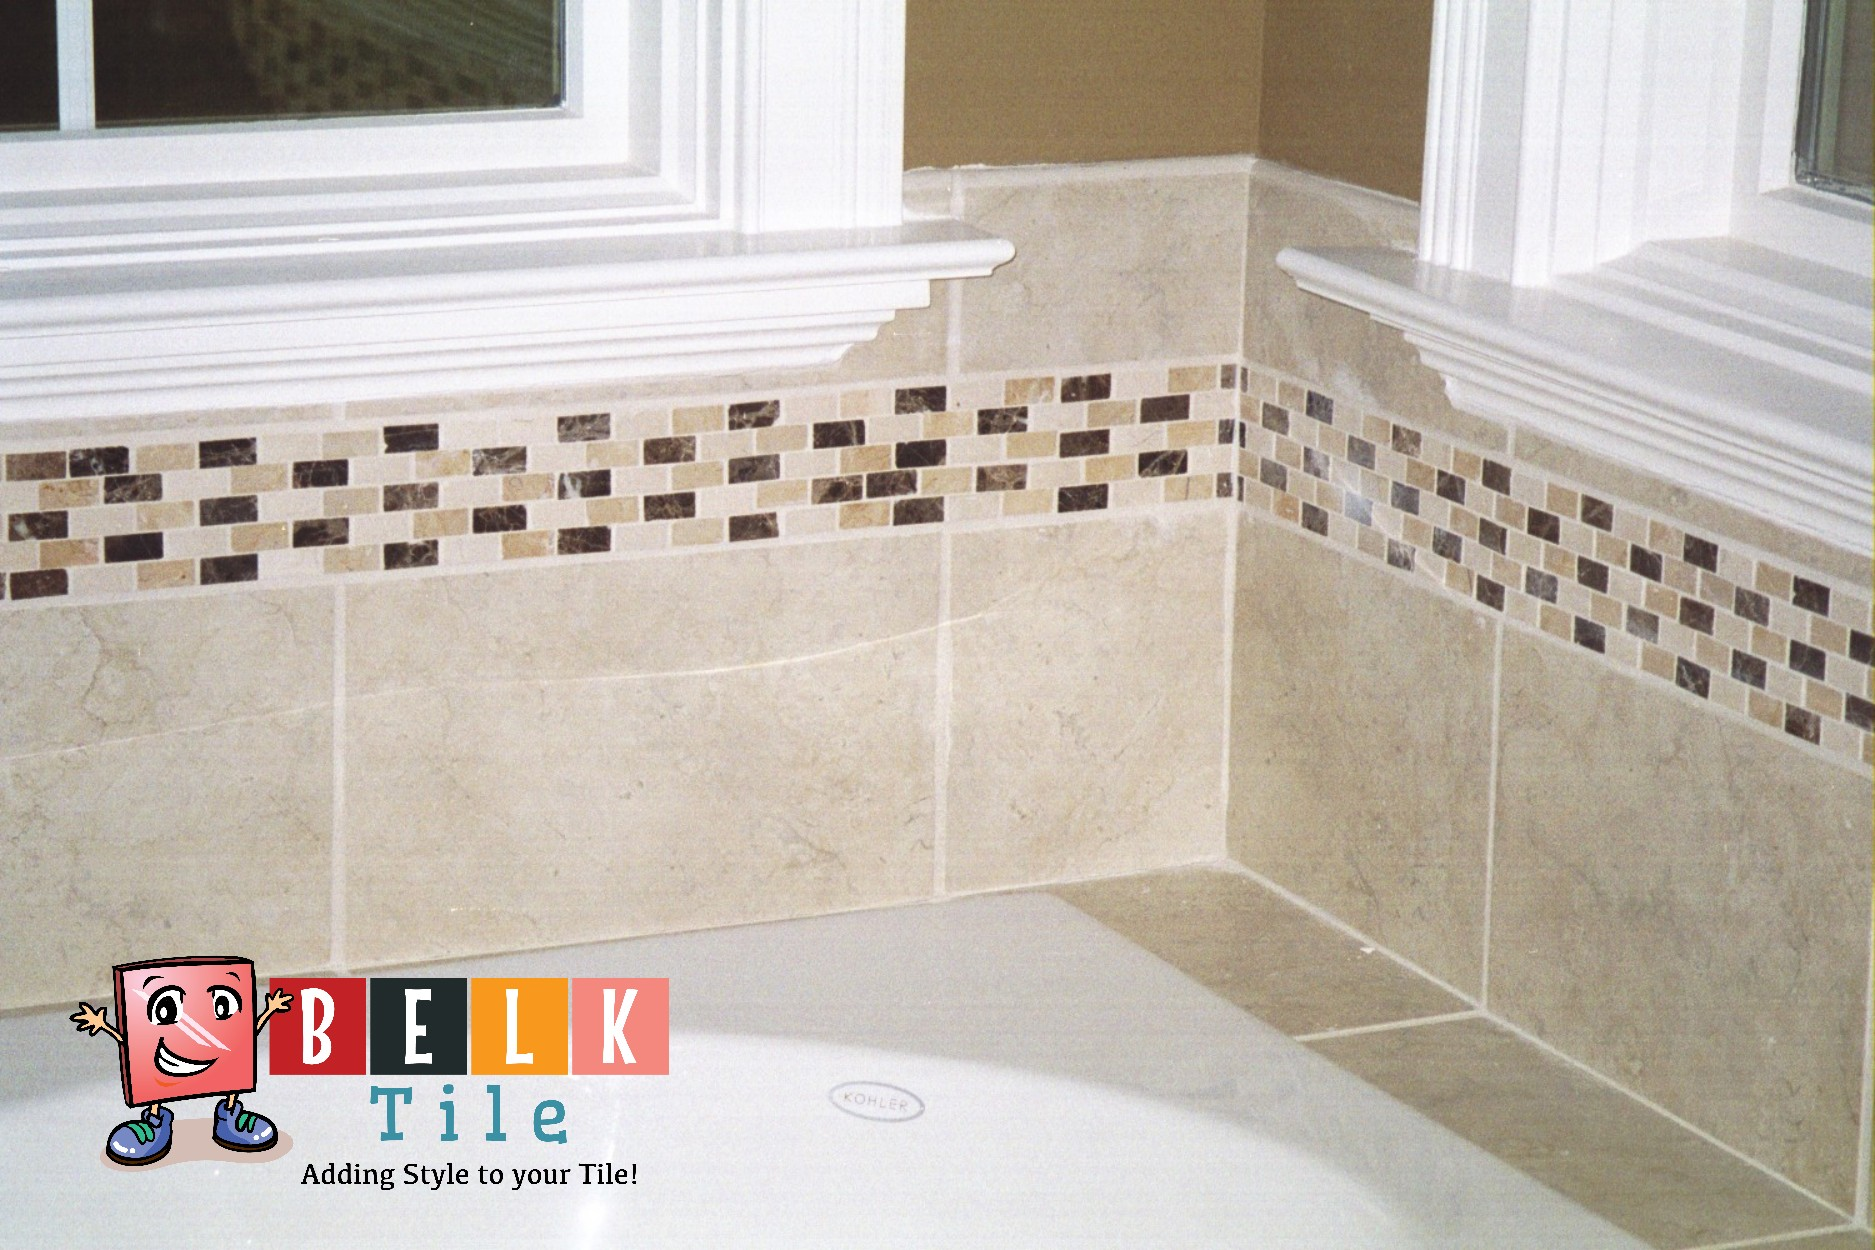 Natural Stone listello ideas | Marble listello | Natural stone listello designs | BELK Tile